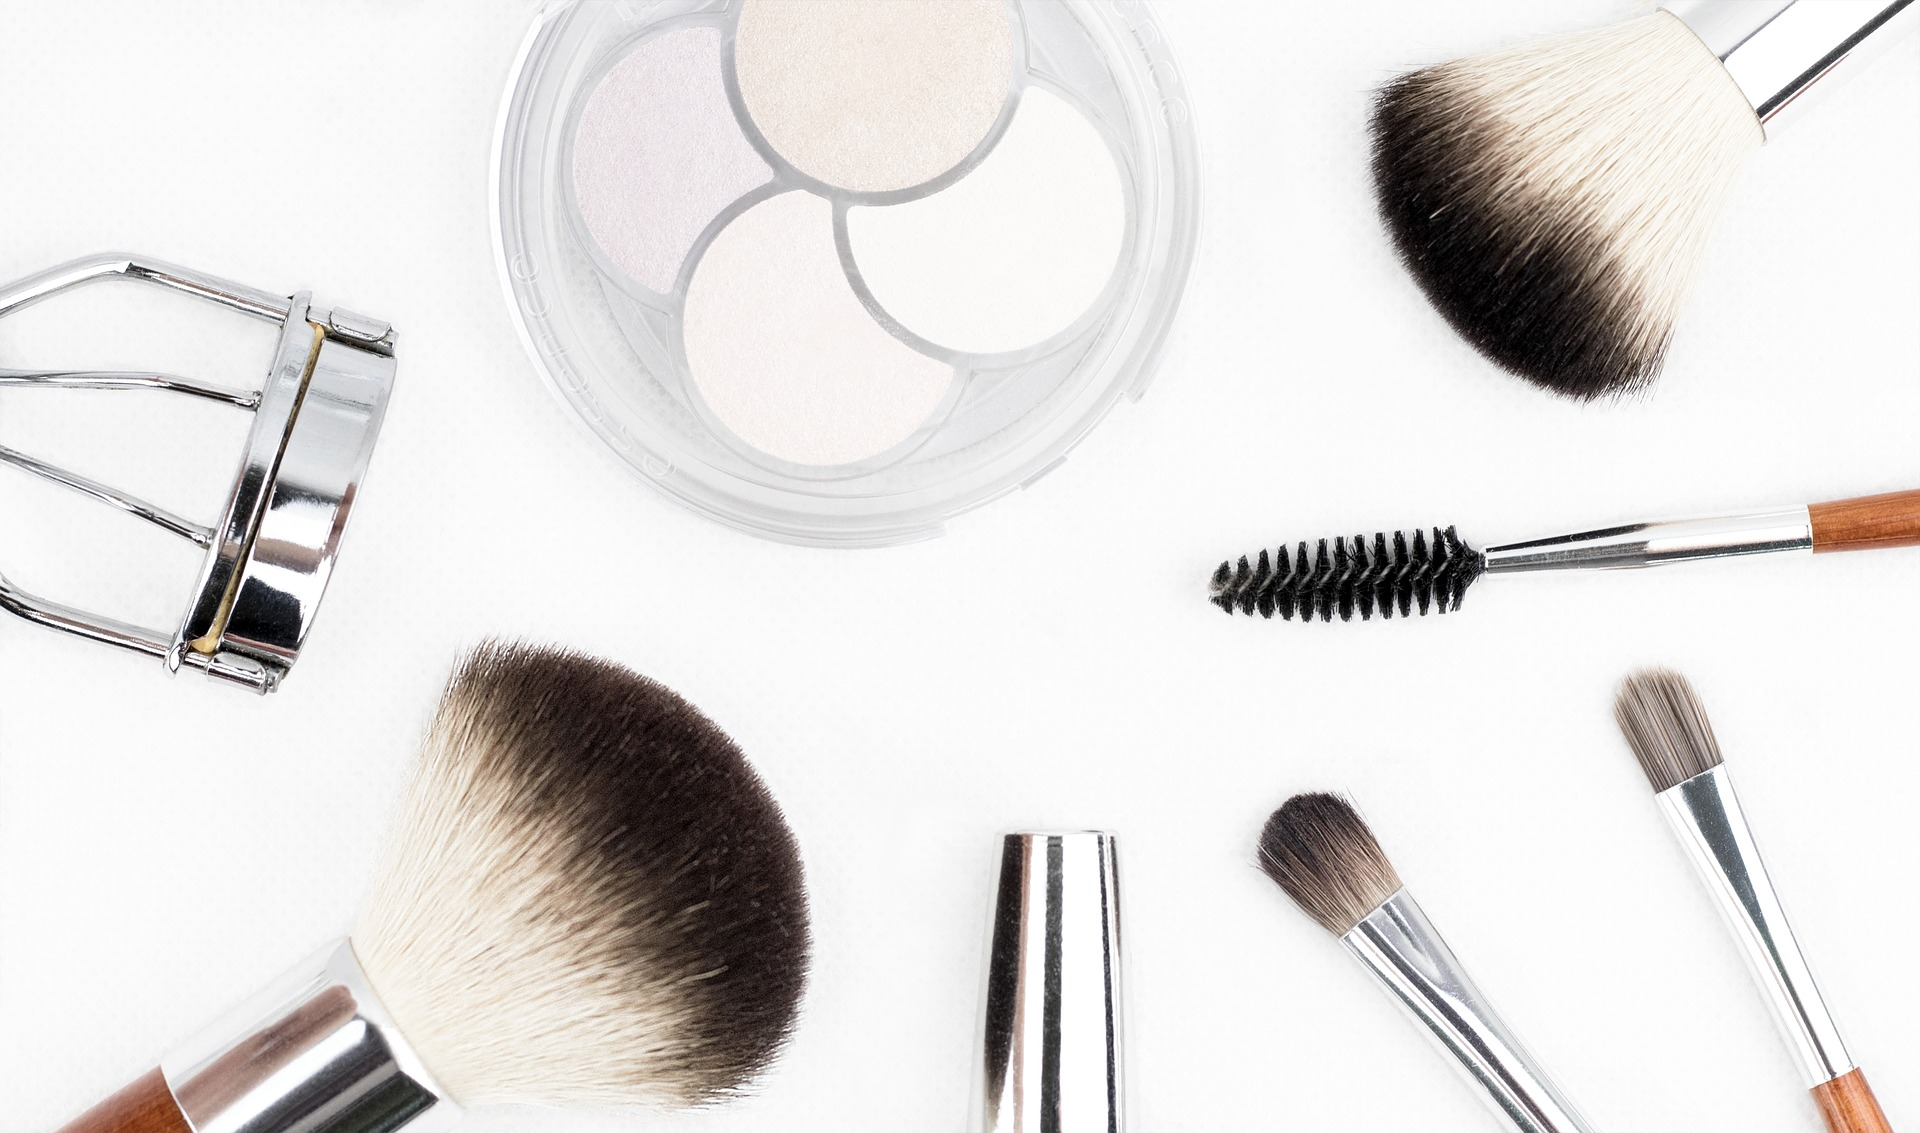 makeup-brush-1768790_1920.jpg